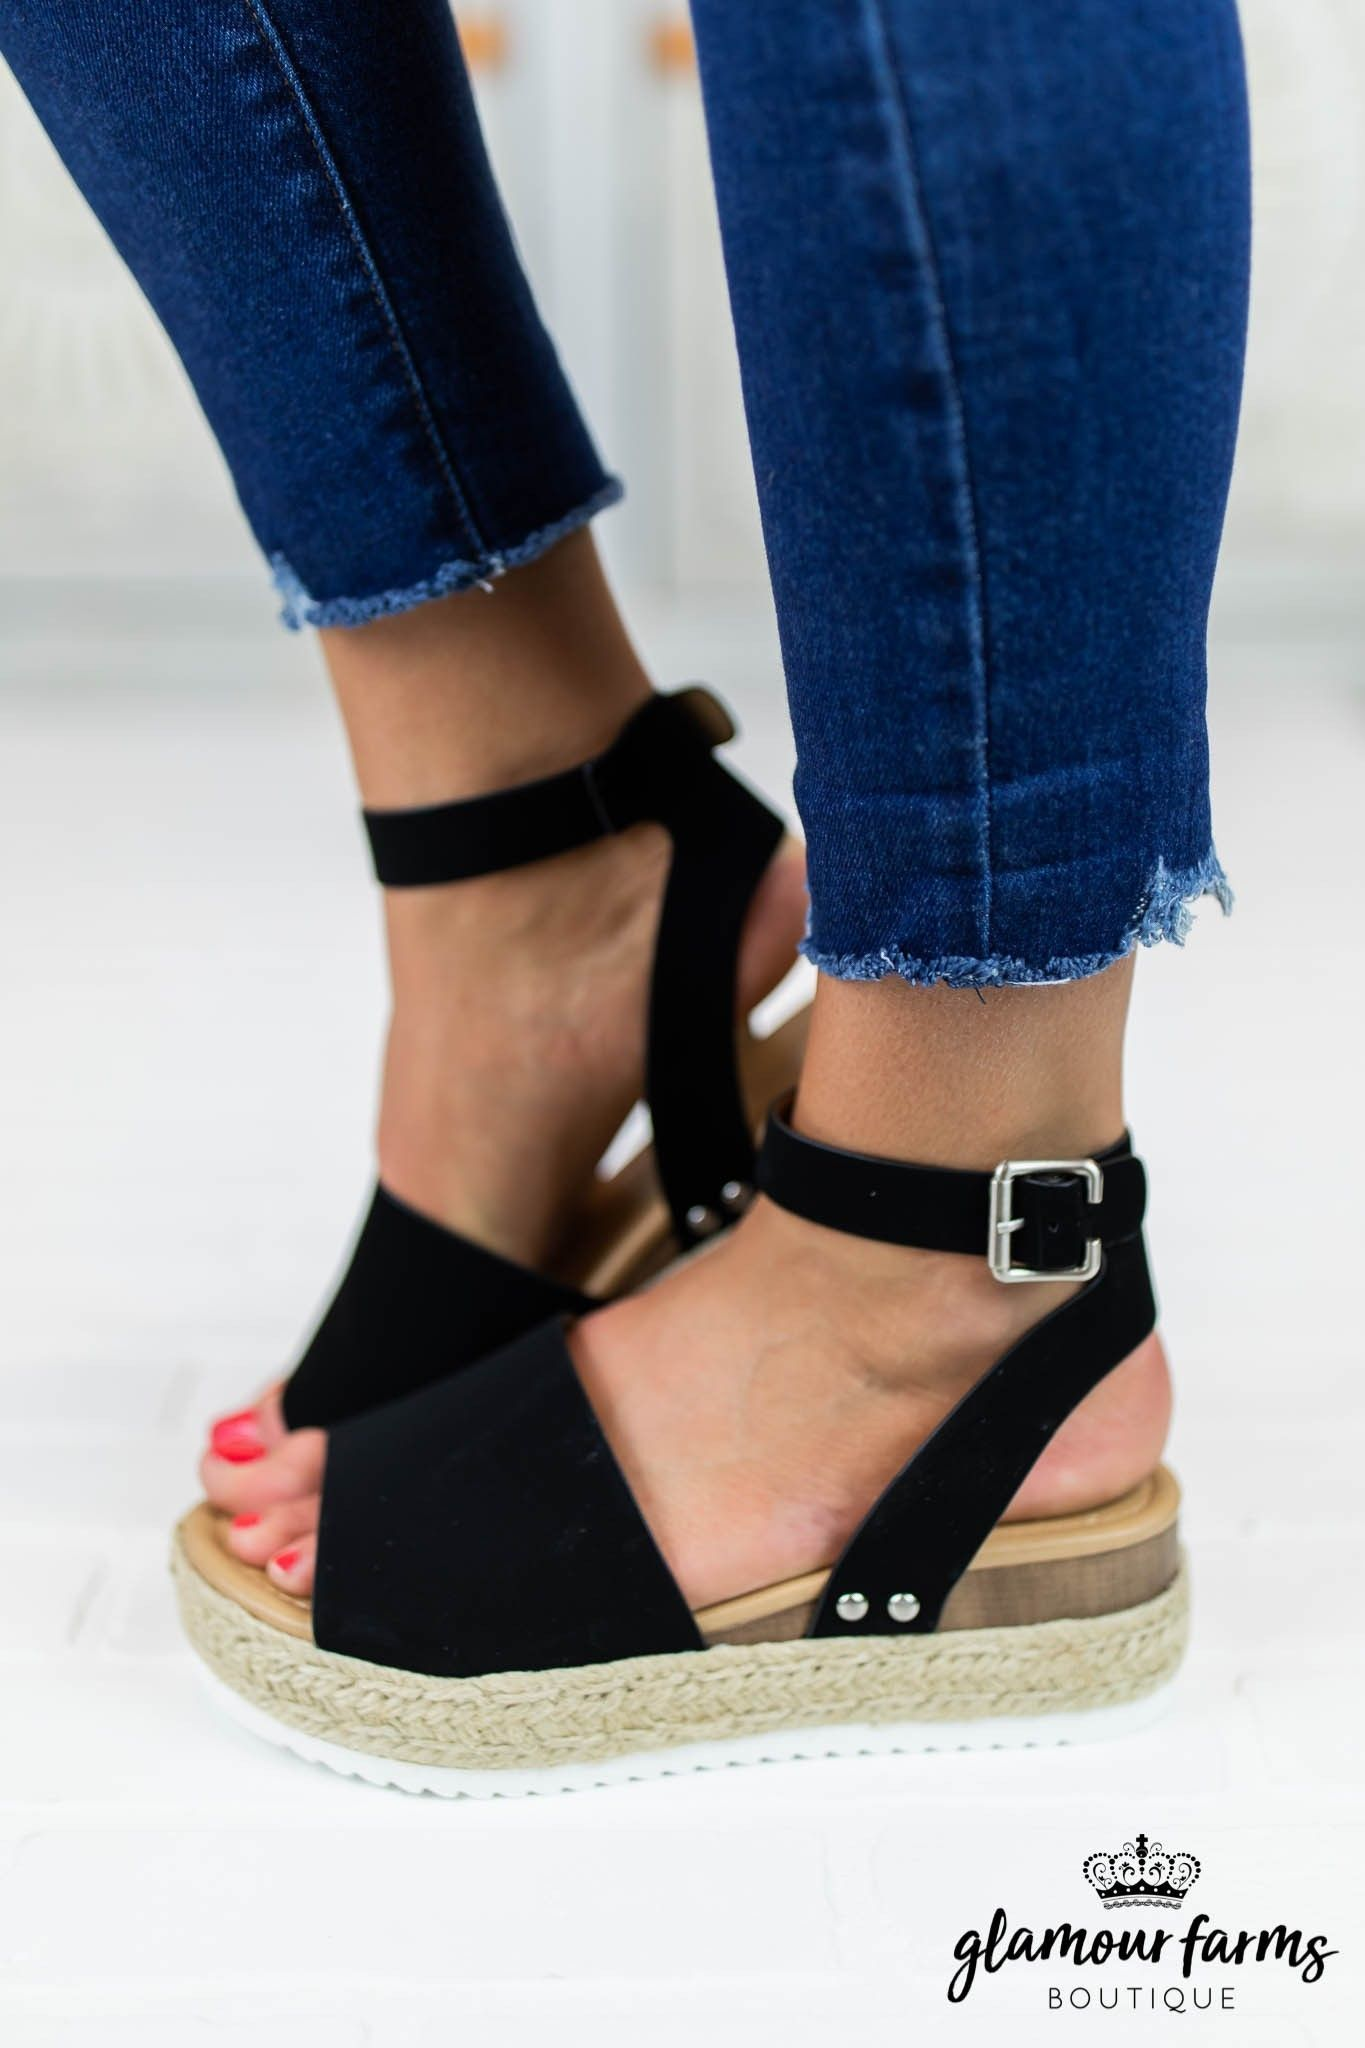 911746b49f Topic Platform Espadrille Sandal - Black #glamourfarms #boutique #shopping  #trends #spring #look #style #favorite #cute #outfit